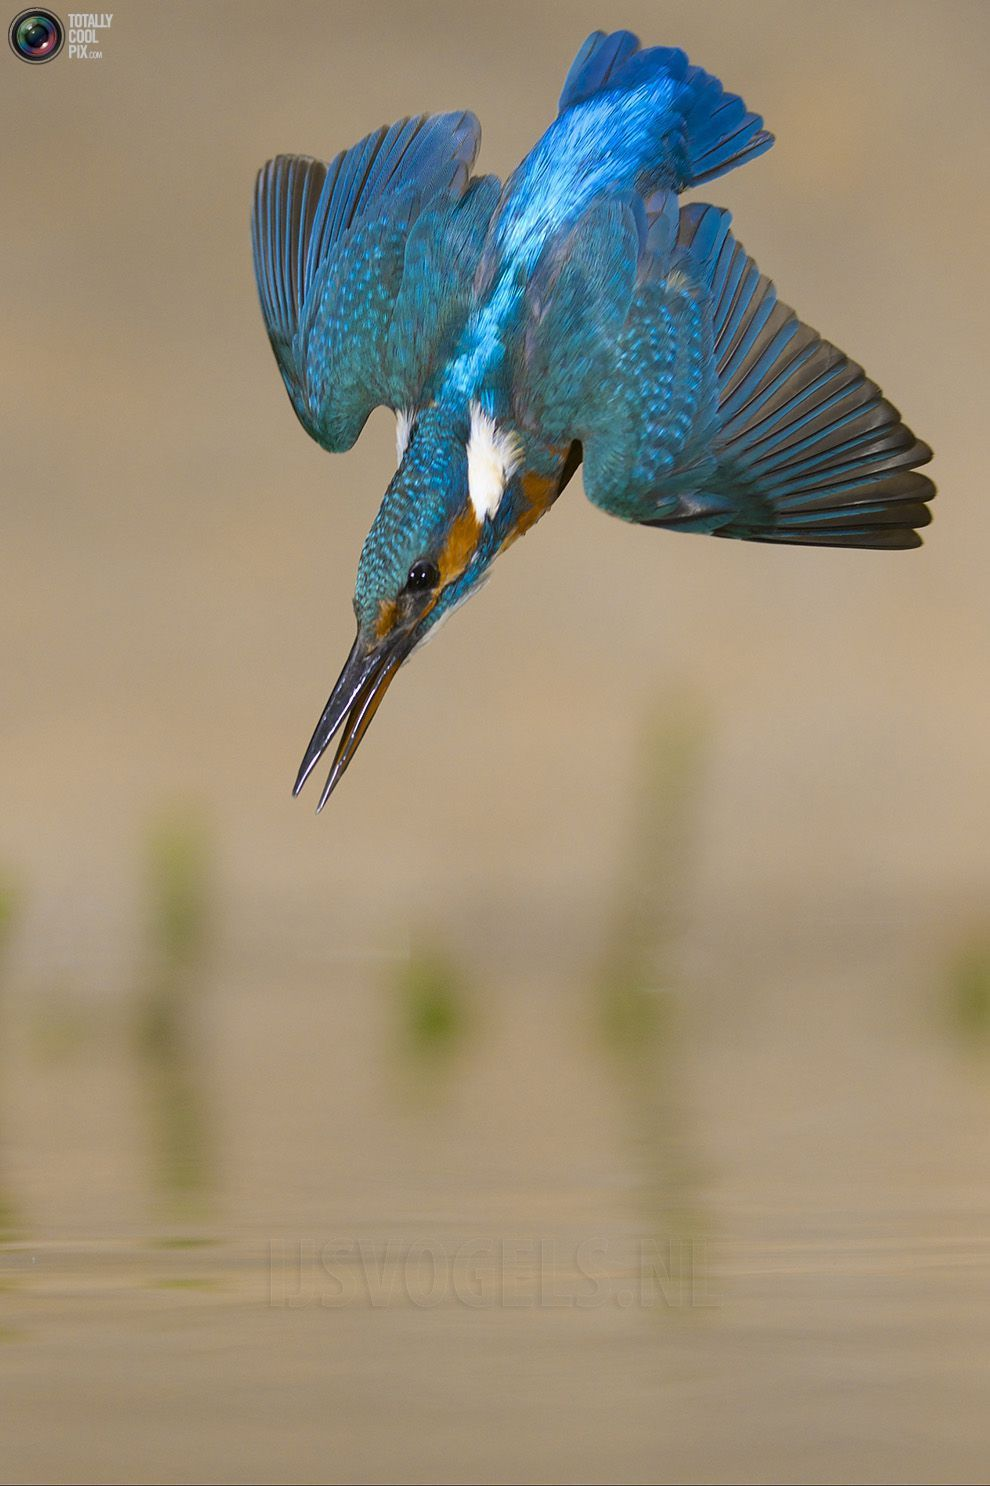 Stunning footage of catching fish by Kingfisher 04